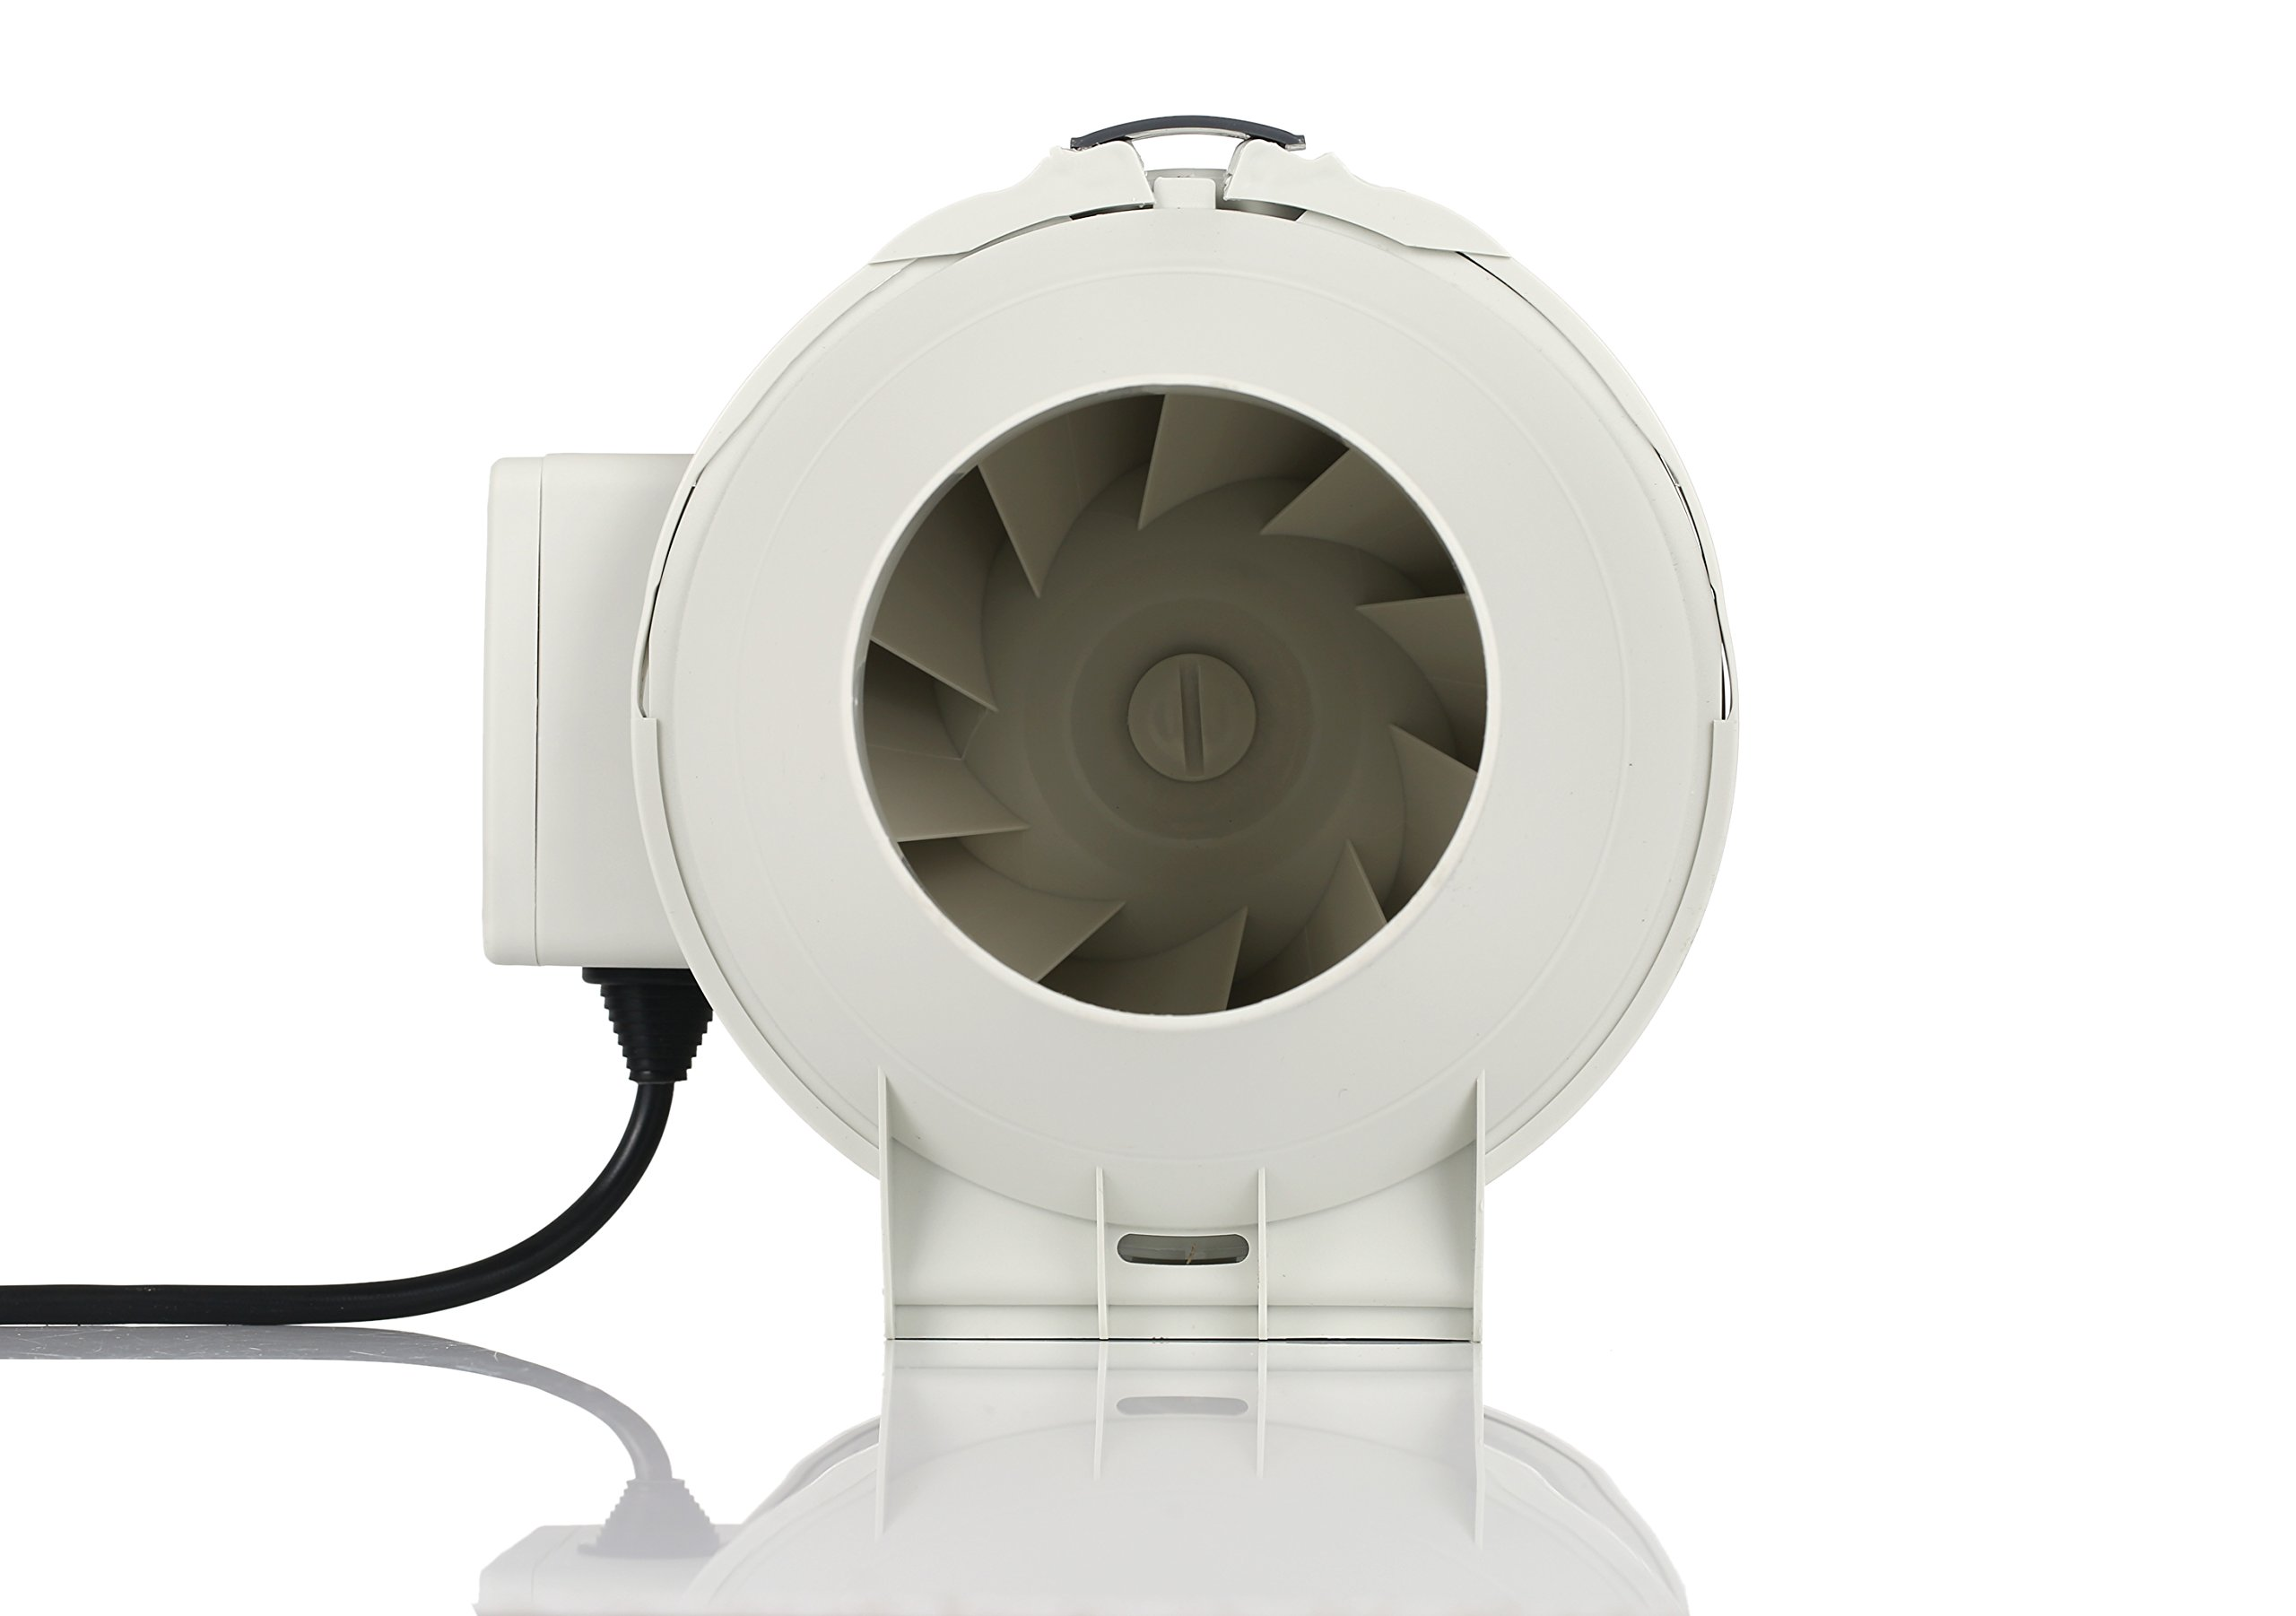 Growgarden 2 speed controlled 100mm 4 inch mixed flow grow room inline duct fan inline booster ventilation fan with 150CFM and low noise level